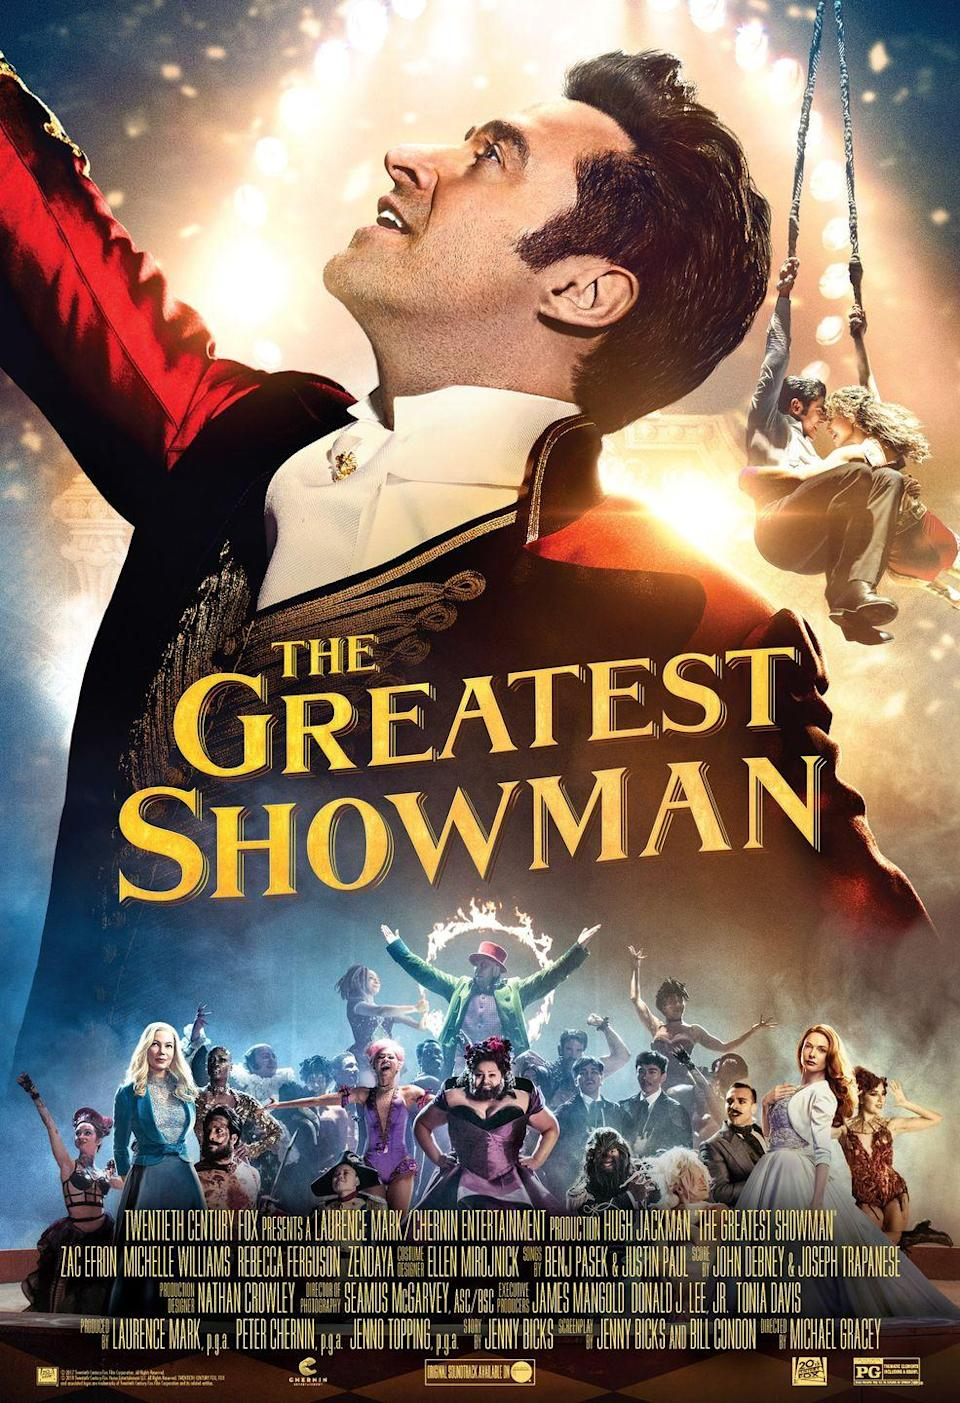 """<p>The story of how P.T. Barnum got his start in the circus business is told through some spectacular song and dance numbers starring Hugh Jackman, Zendaya, Zac Efron, and more. You'll run to give the soundtrack another listen within minutes of the movie ending.</p><p><a class=""""link rapid-noclick-resp"""" href=""""https://www.amazon.com/Greatest-Showman-Hugh-Jackman/dp/B078HT6H7K/ref=sr_1_1?tag=syn-yahoo-20&ascsubtag=%5Bartid%7C10072.g.27734413%5Bsrc%7Cyahoo-us"""" rel=""""nofollow noopener"""" target=""""_blank"""" data-ylk=""""slk:WATCH NOW"""">WATCH NOW</a></p>"""